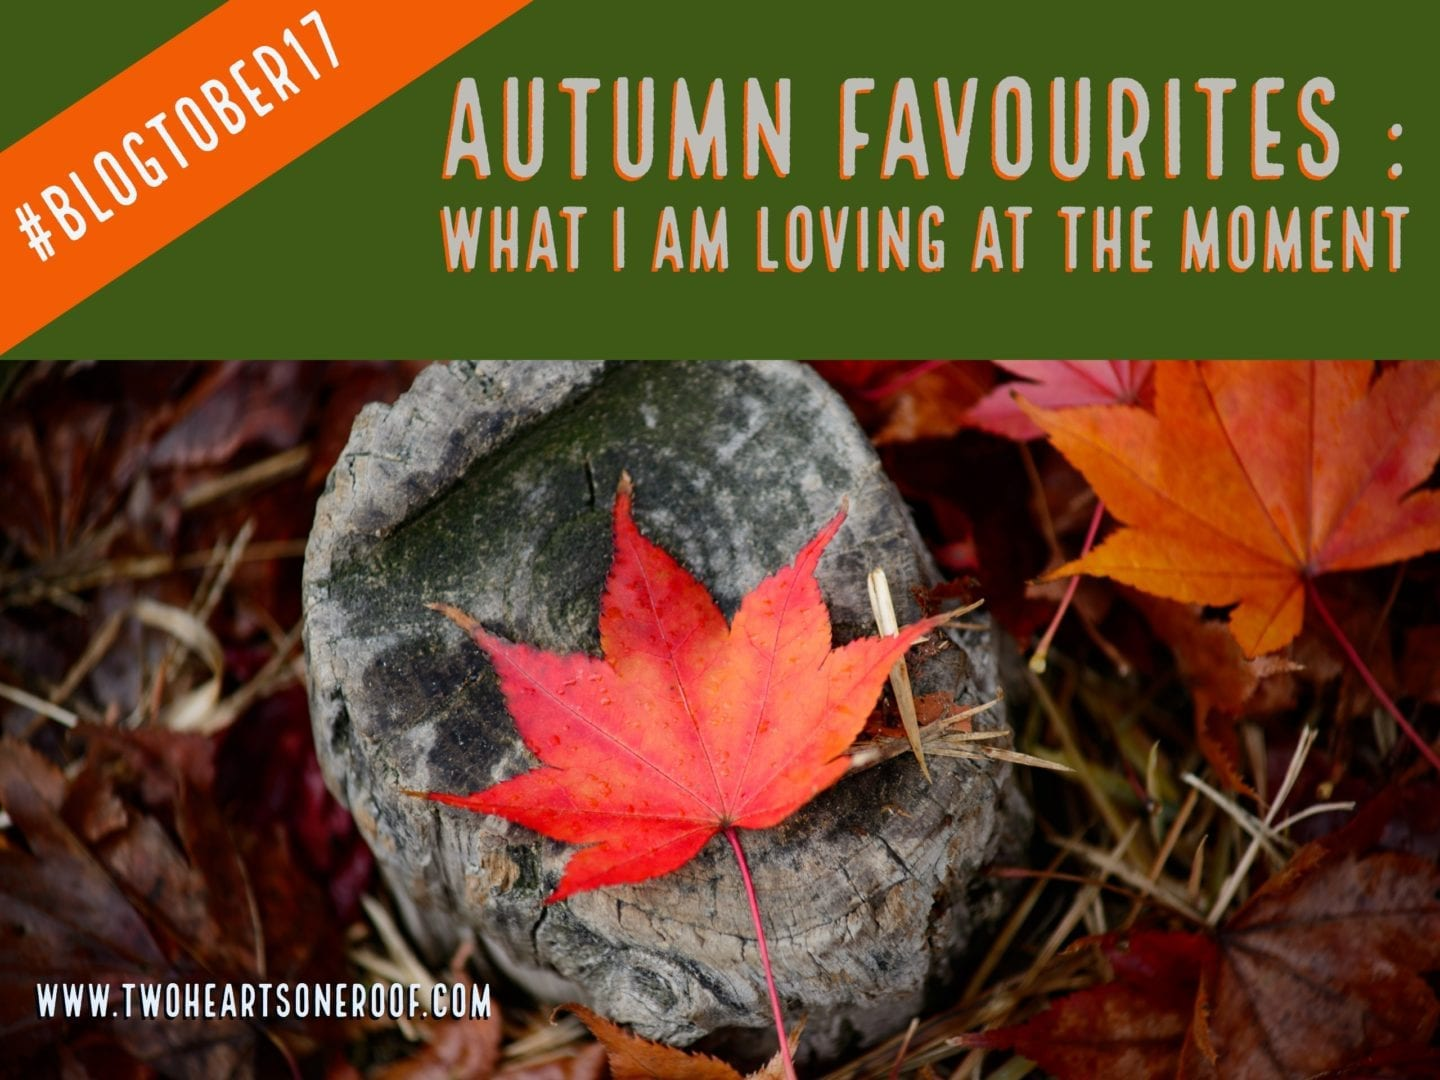 Autumn Favourites – What I am Loving At The Moment